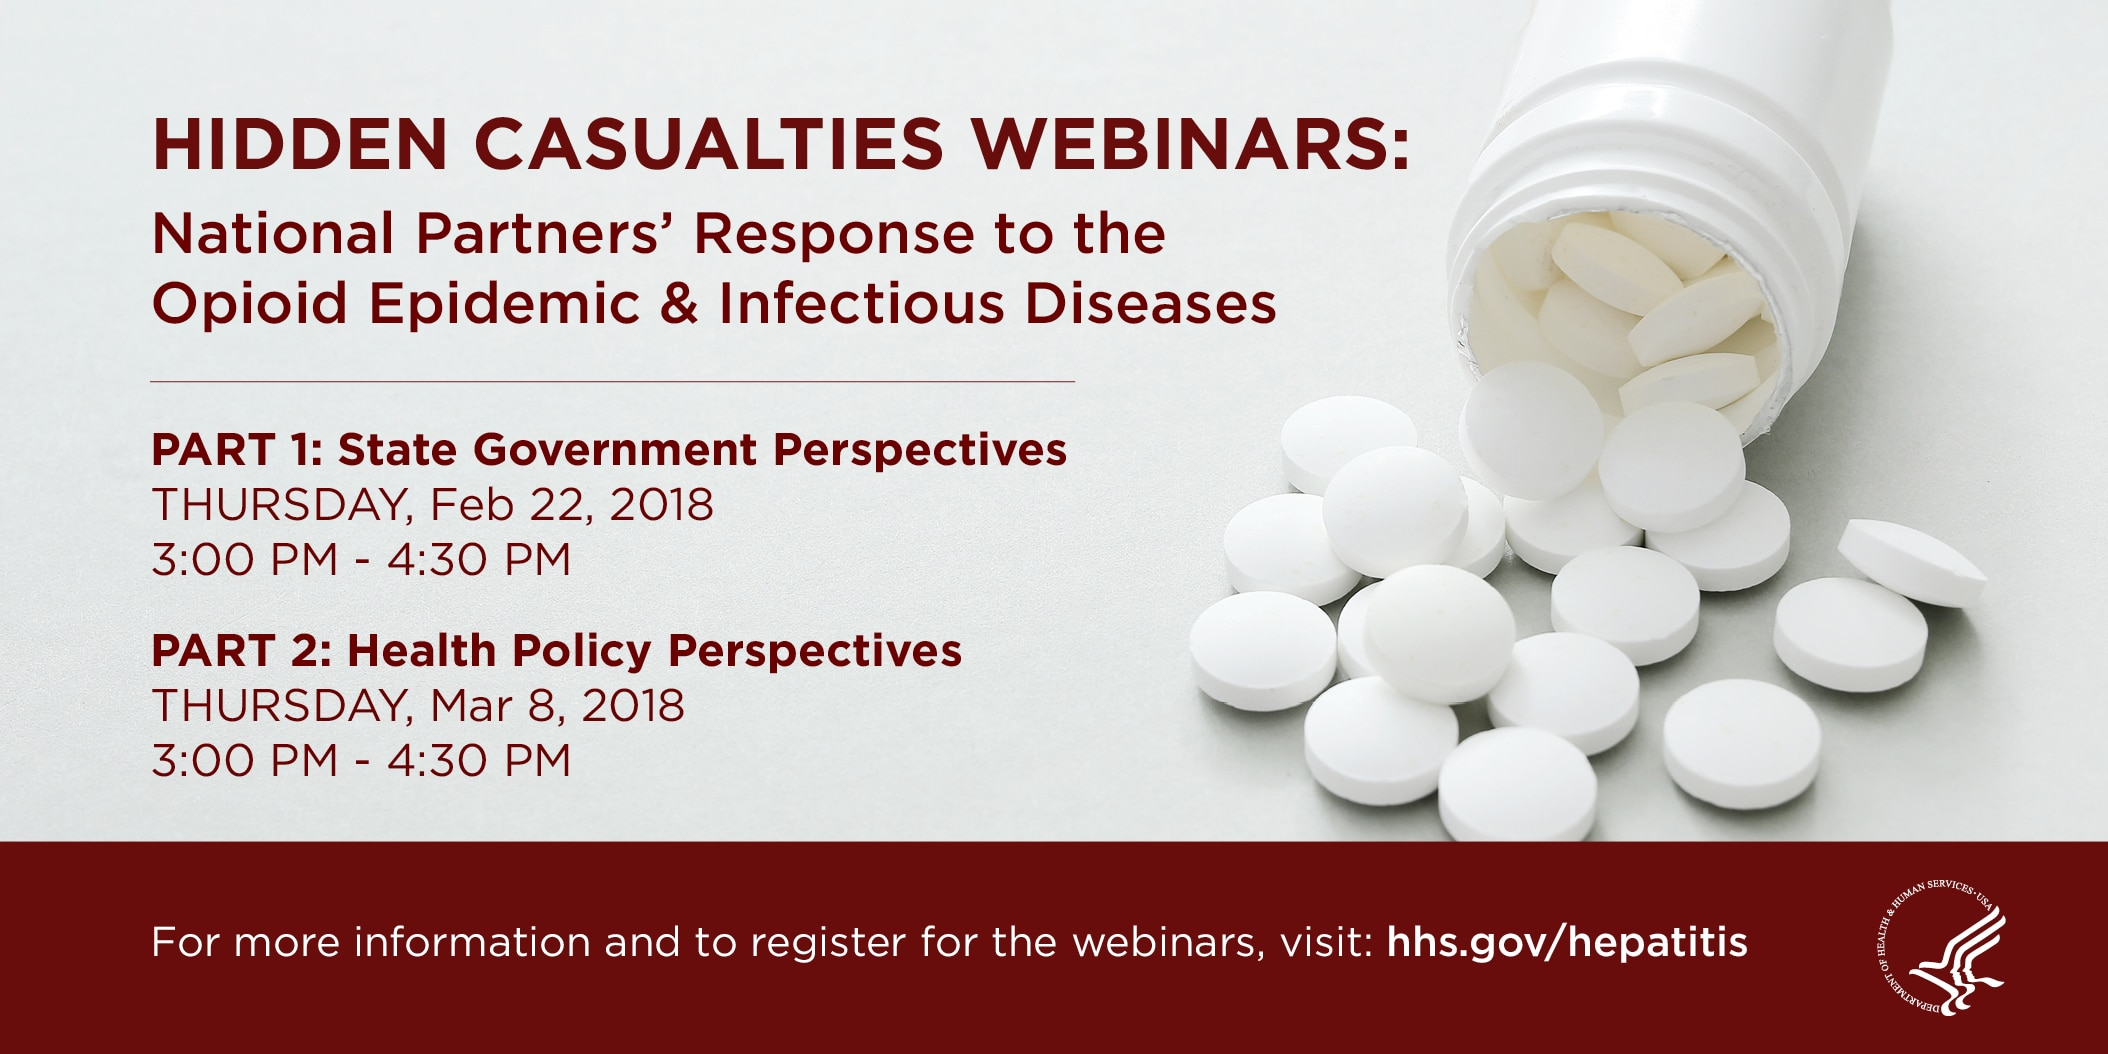 Hidden Casualties Webinars: National Partners Response to the Opioid Epidemic & Infectious Diseases